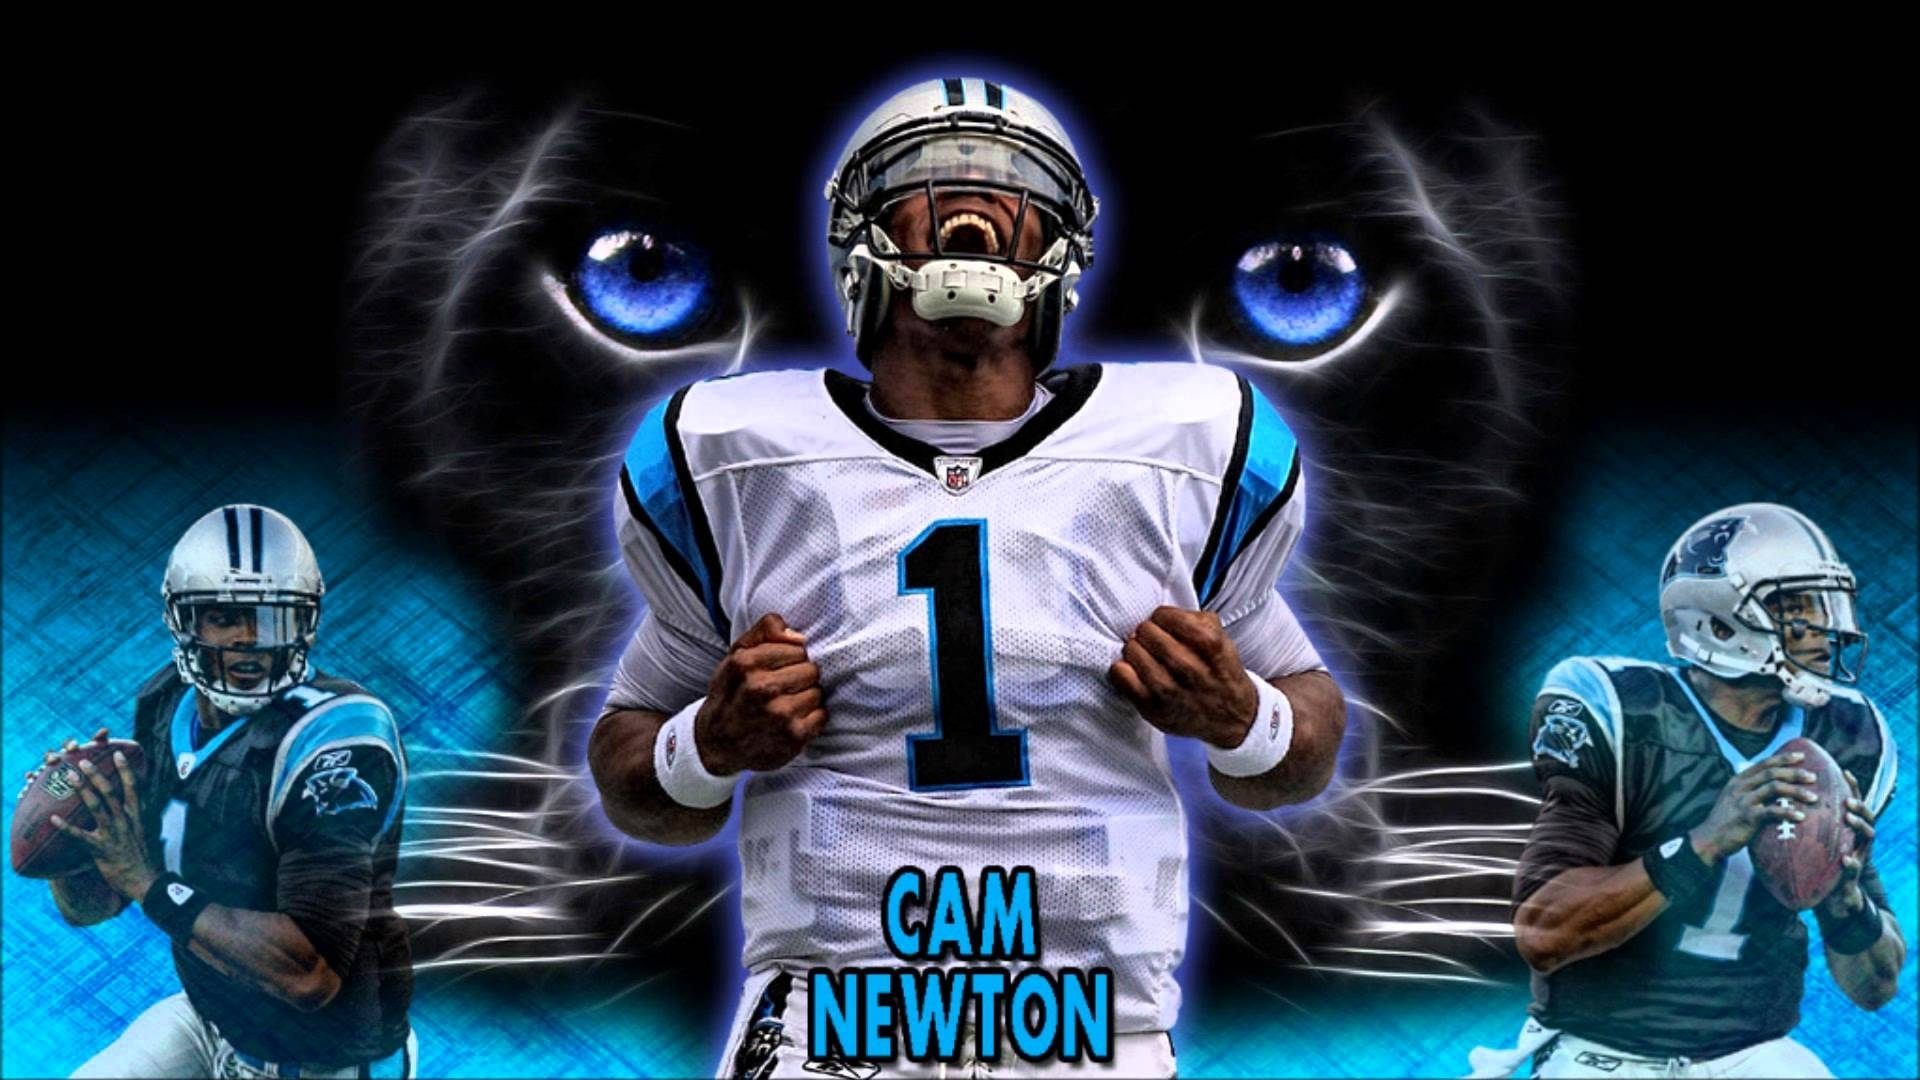 free nfl cam newton wallpaper - youtube